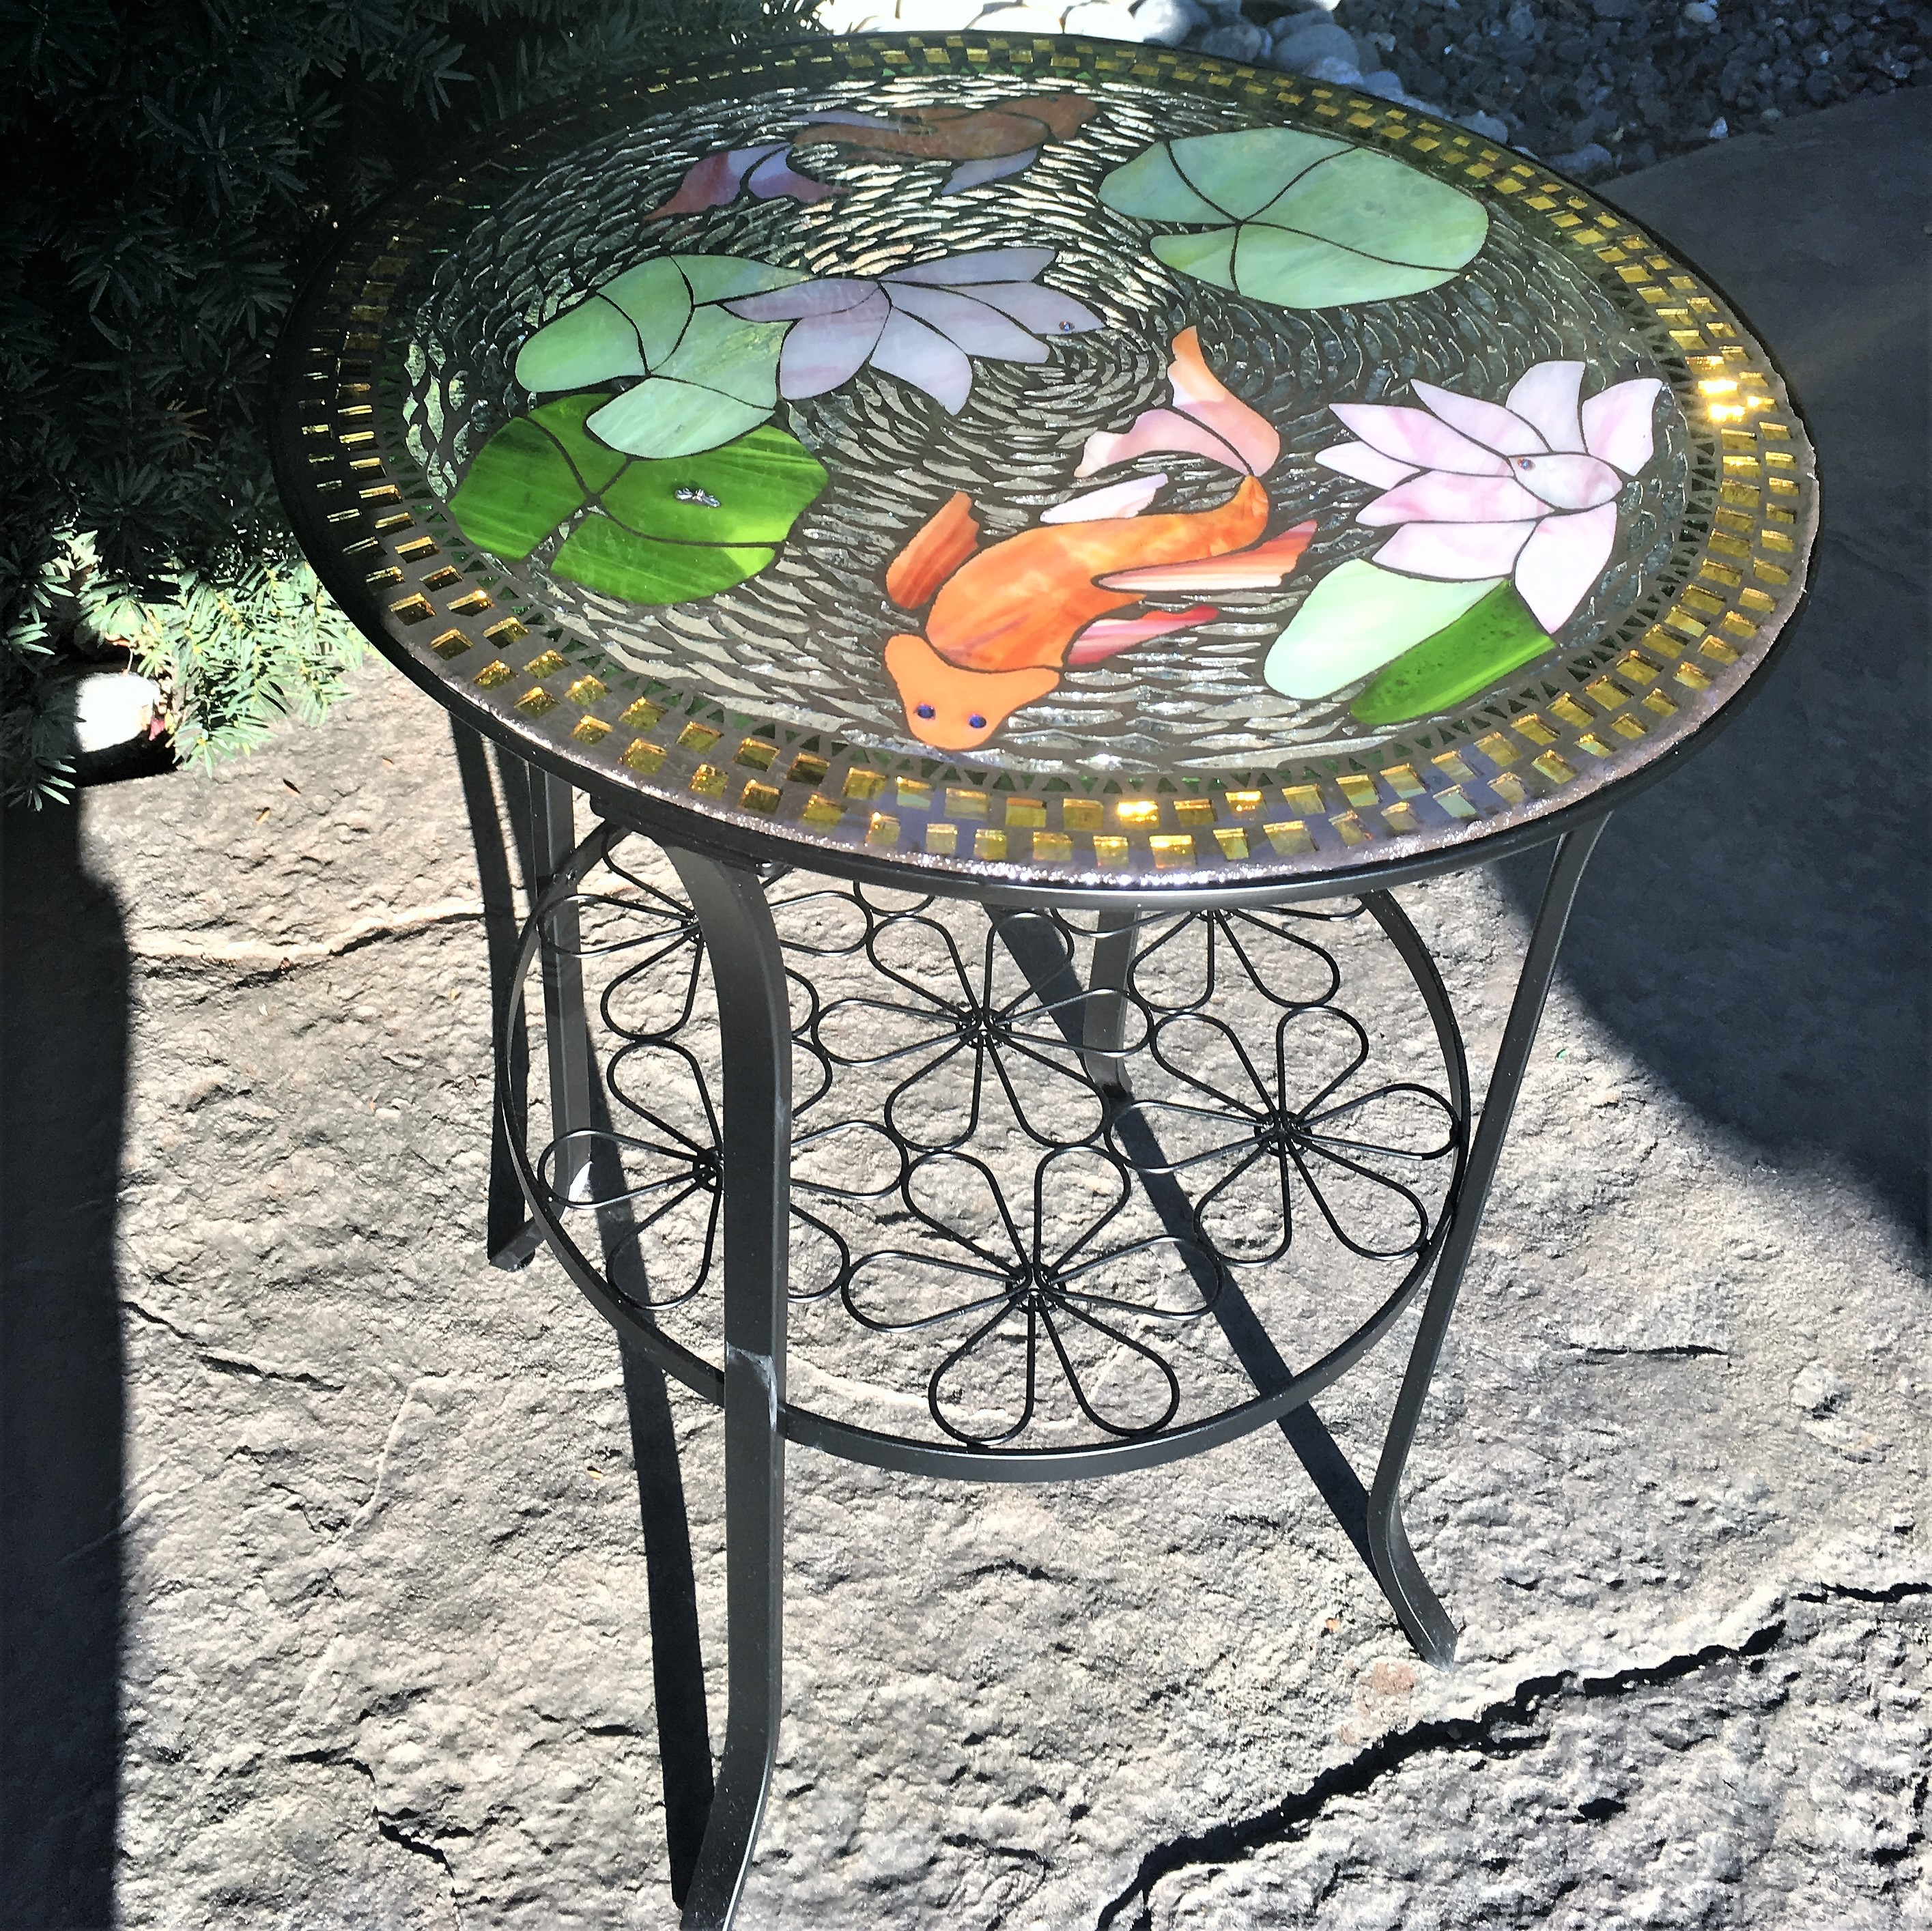 Swimming Koi mosaic glass table is seen outside on a stone floor patio.